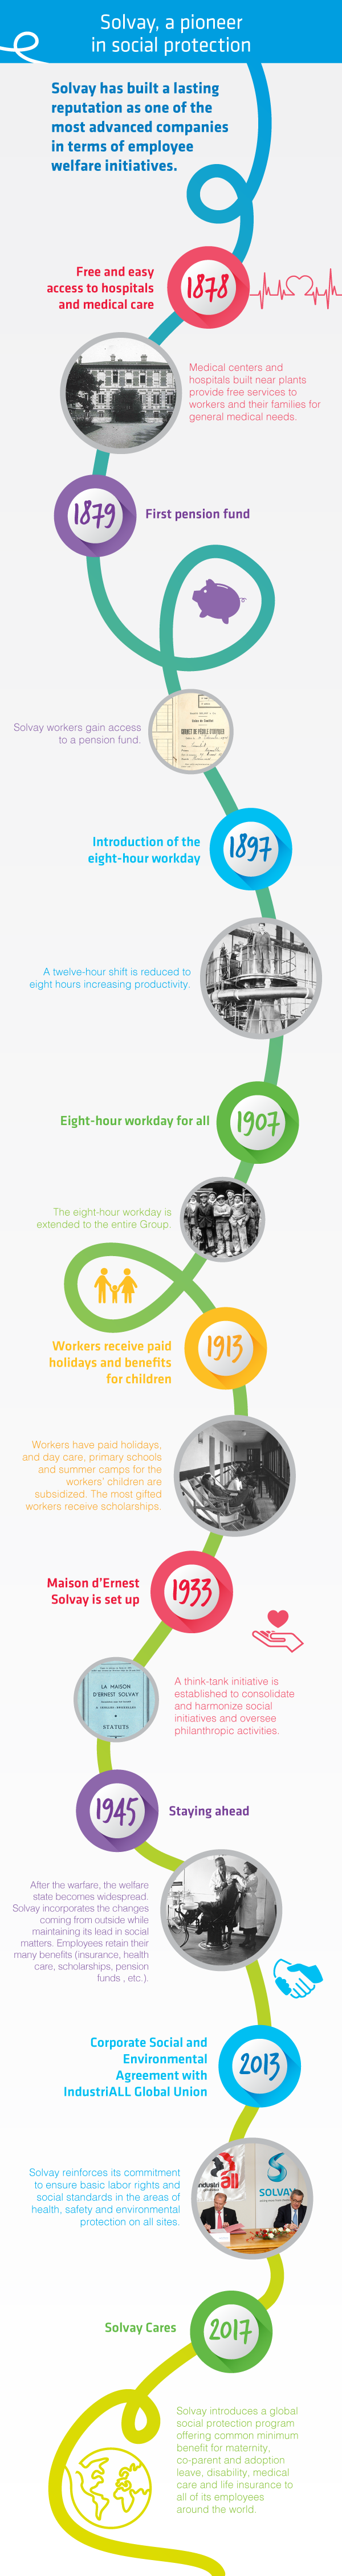 timeline-showing-solvay-is-one-of-the-most-advanced-company-in-terms-of-employee-welfare-initiatives